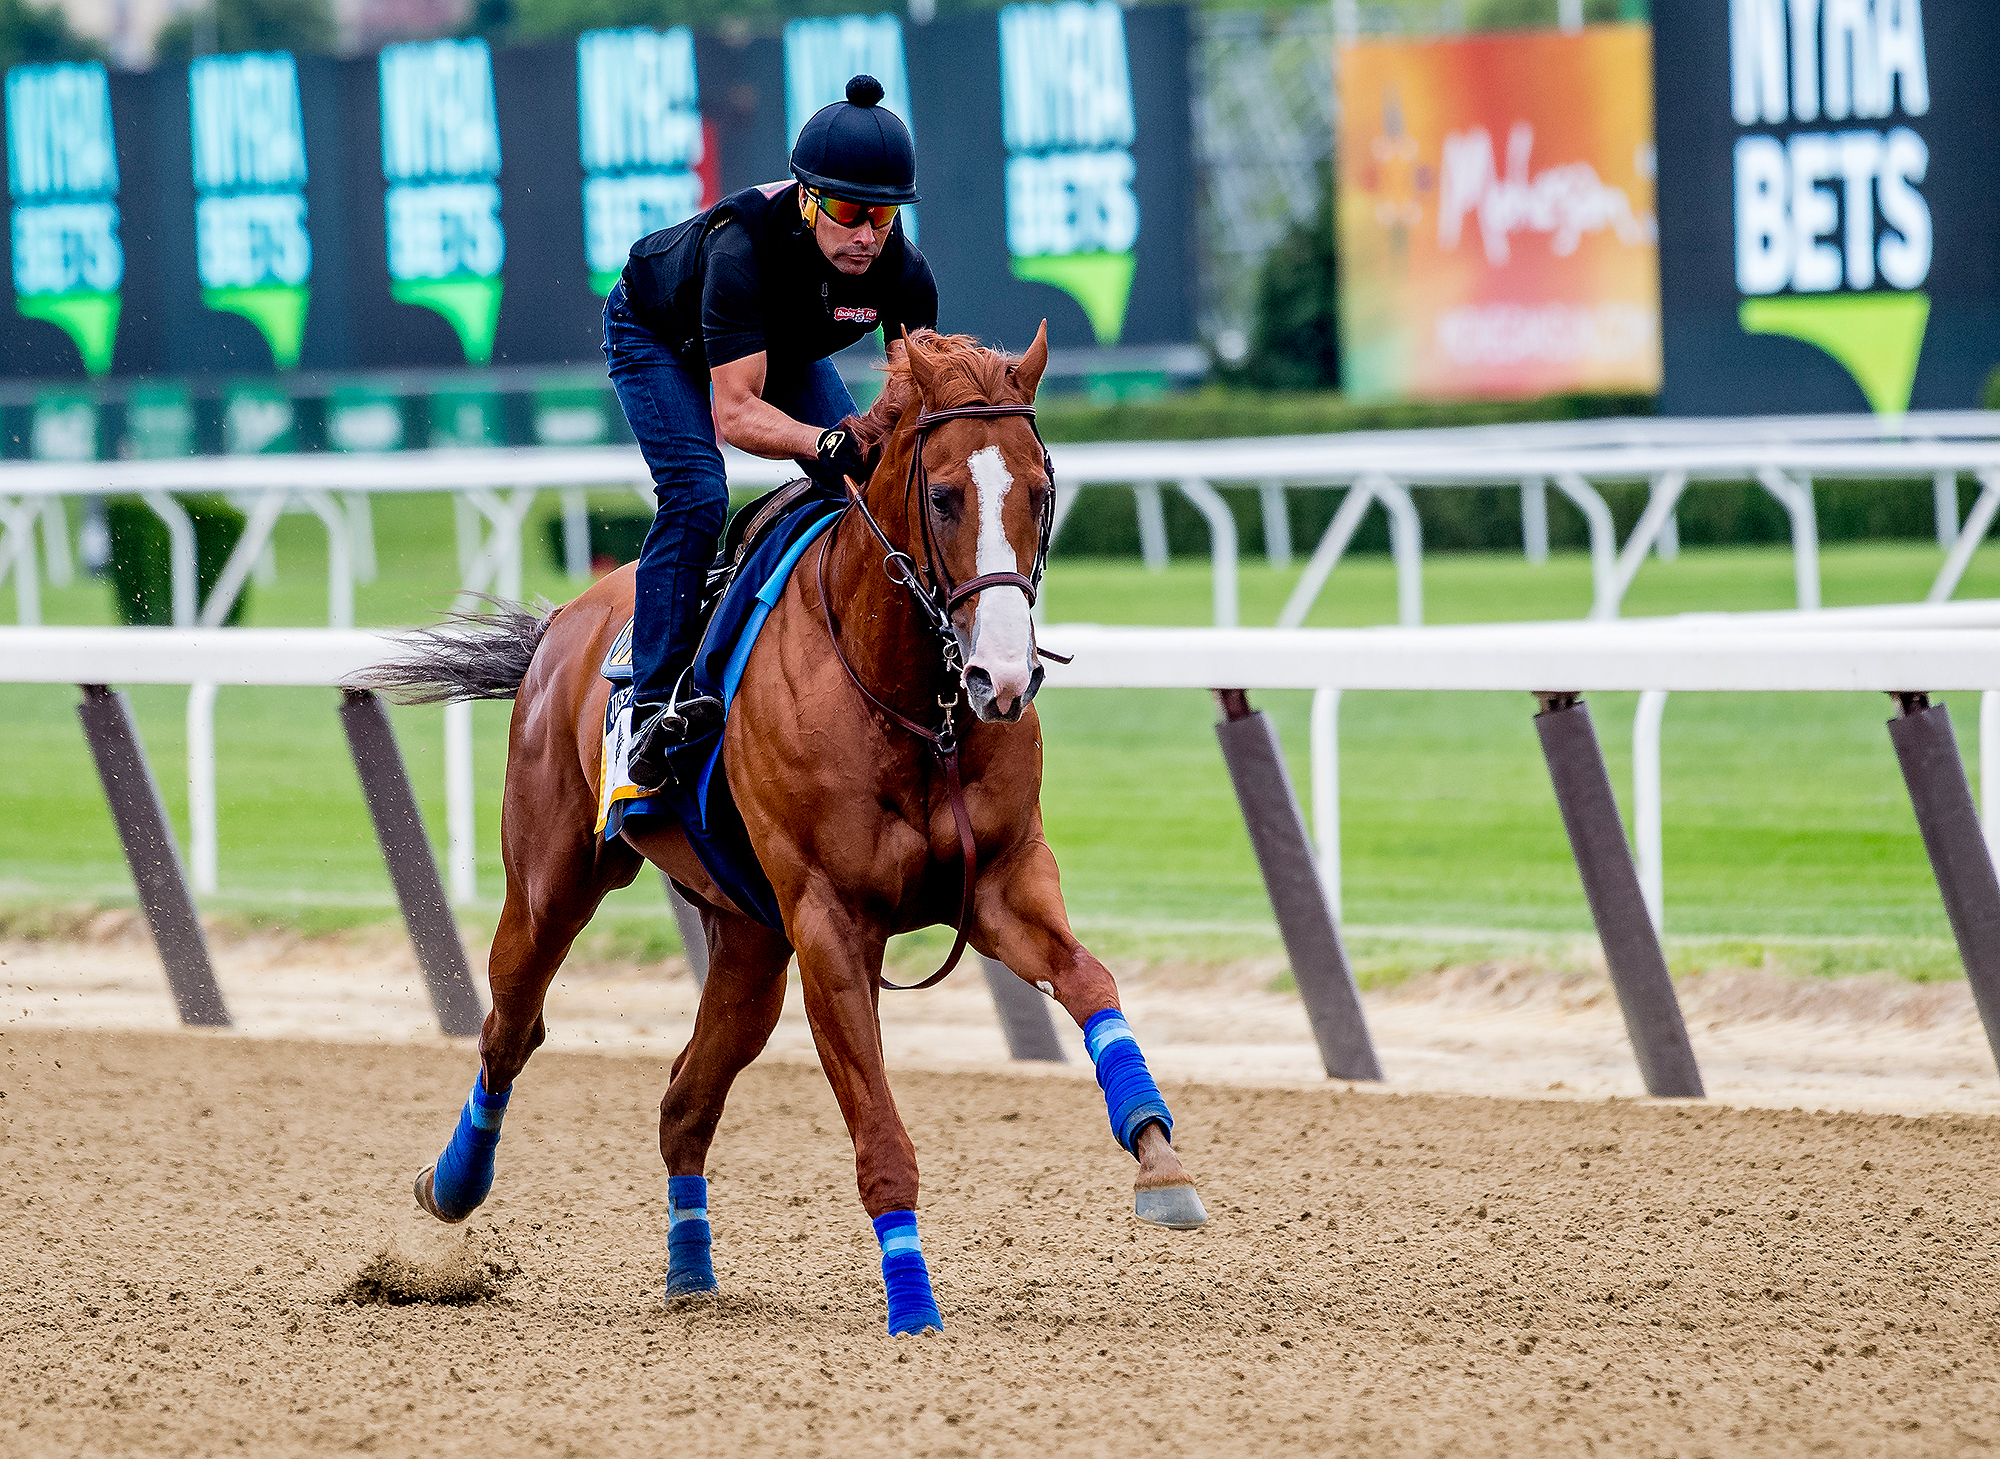 150th Belmont Stakes Preparations